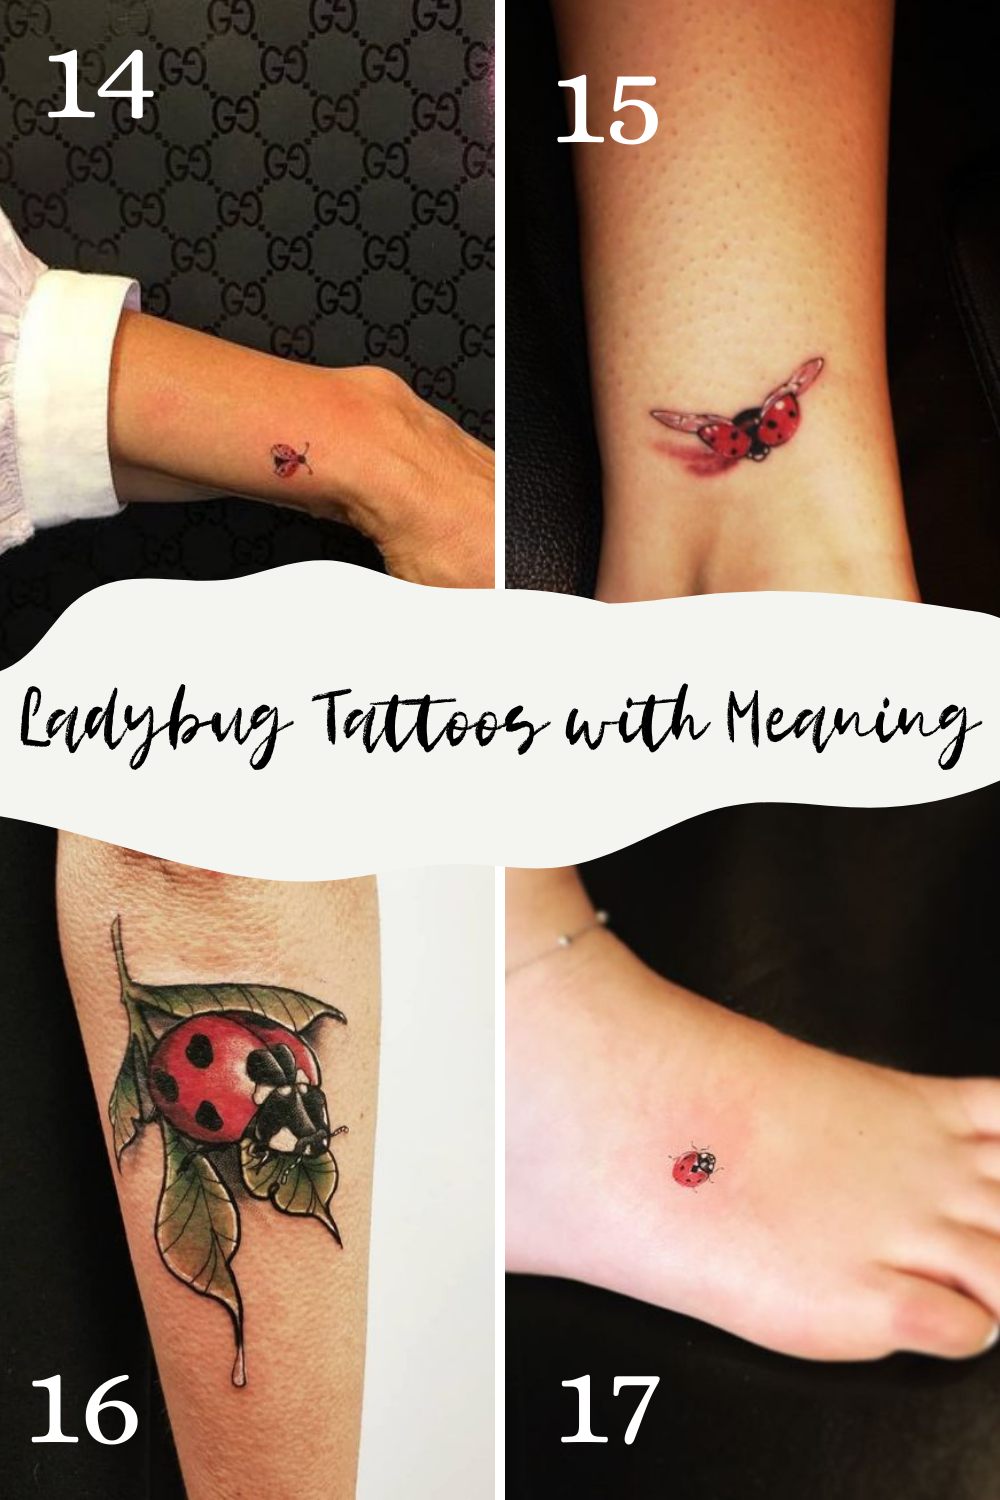 Meaningful Tattoos of Lady Bugs